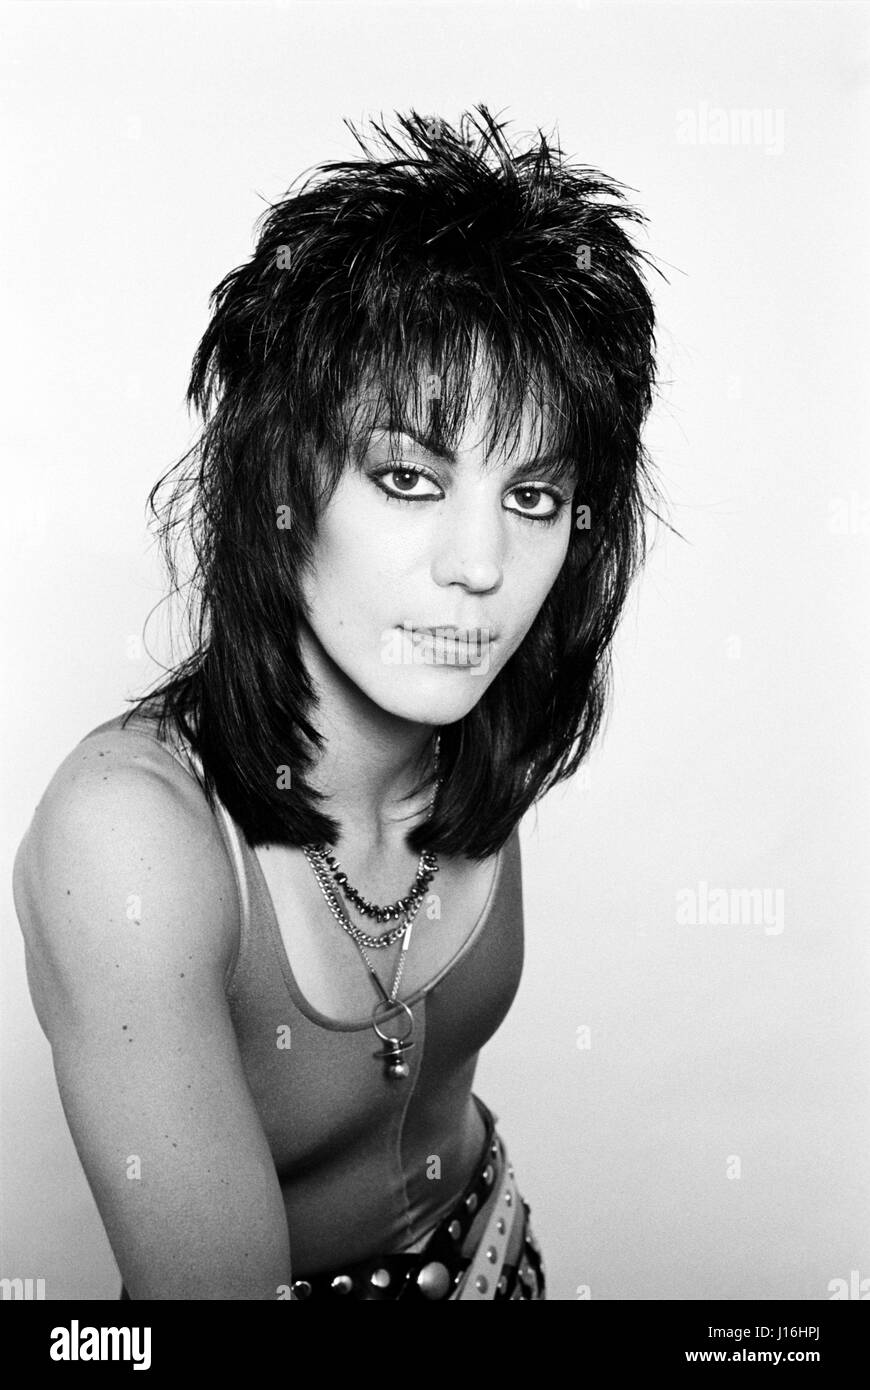 1985 Pic Joan Jett In 2019 Joan Jett Cherie Currie Rock N Roll